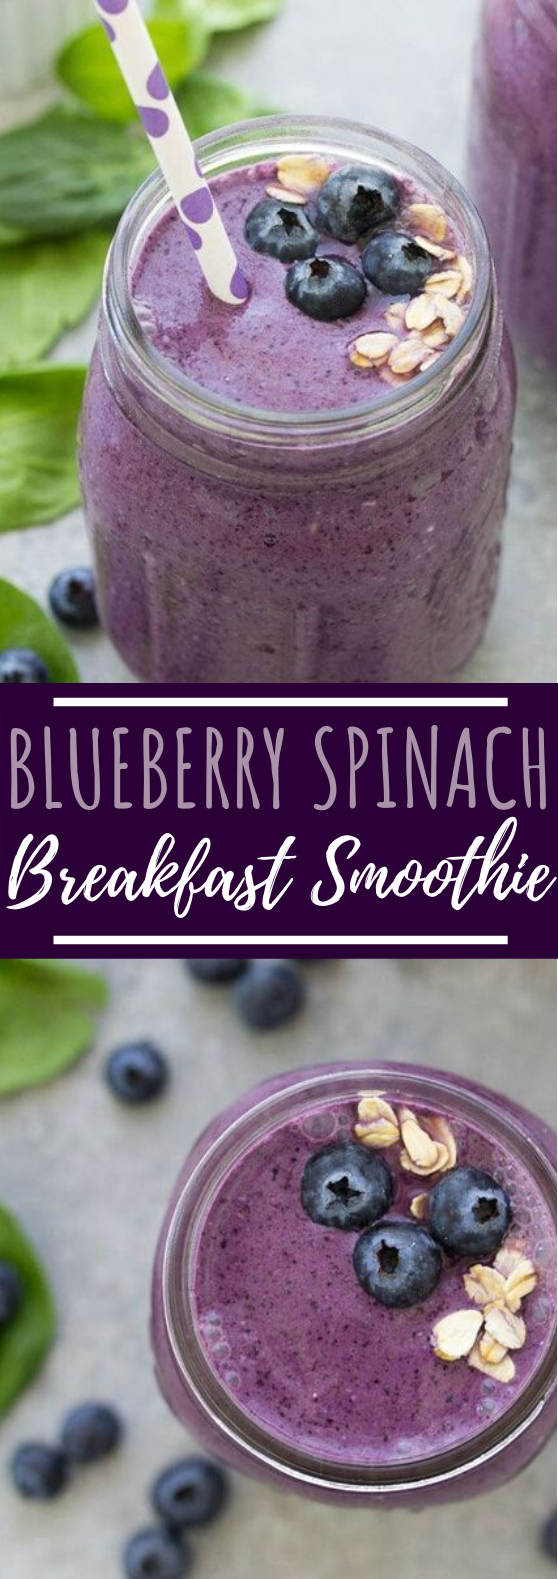 Blueberry Spinach Breakfast Smoothie #healthy #drinks #breakfast #smoothies #juice